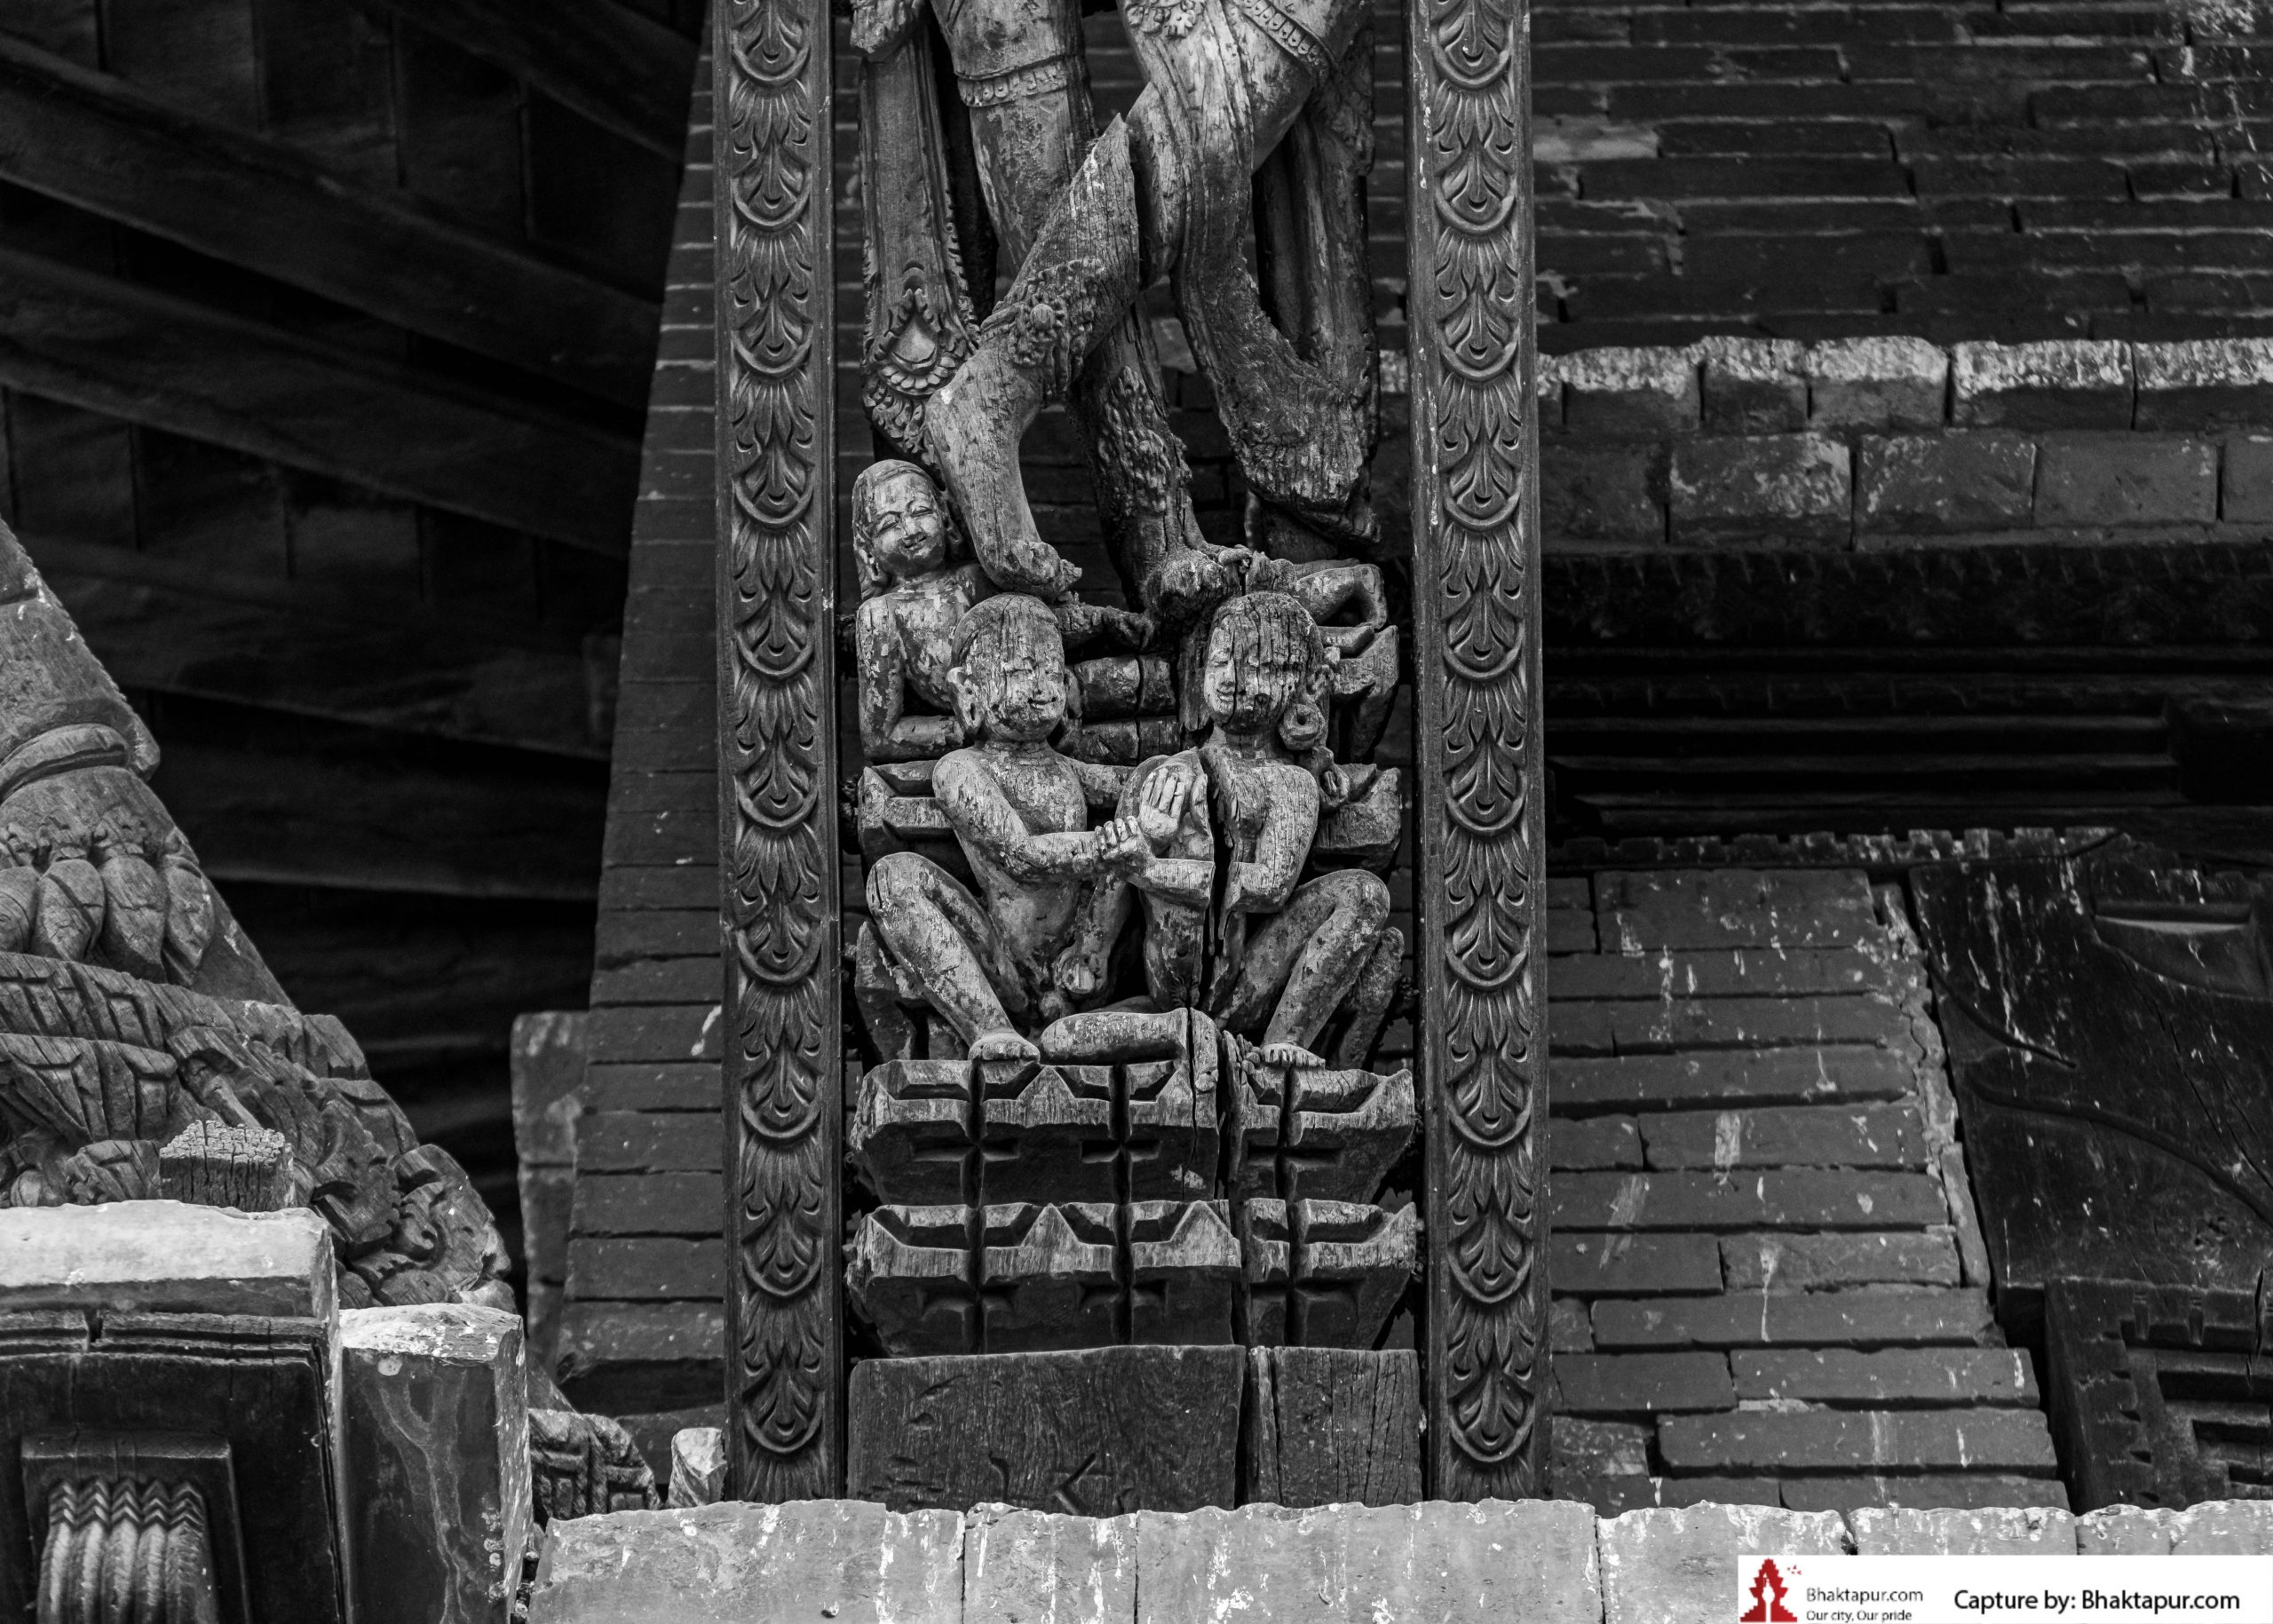 https://www.bhaktapur.com/wp-content/uploads/2021/08/erotic-carving-105-of-137-scaled.jpg